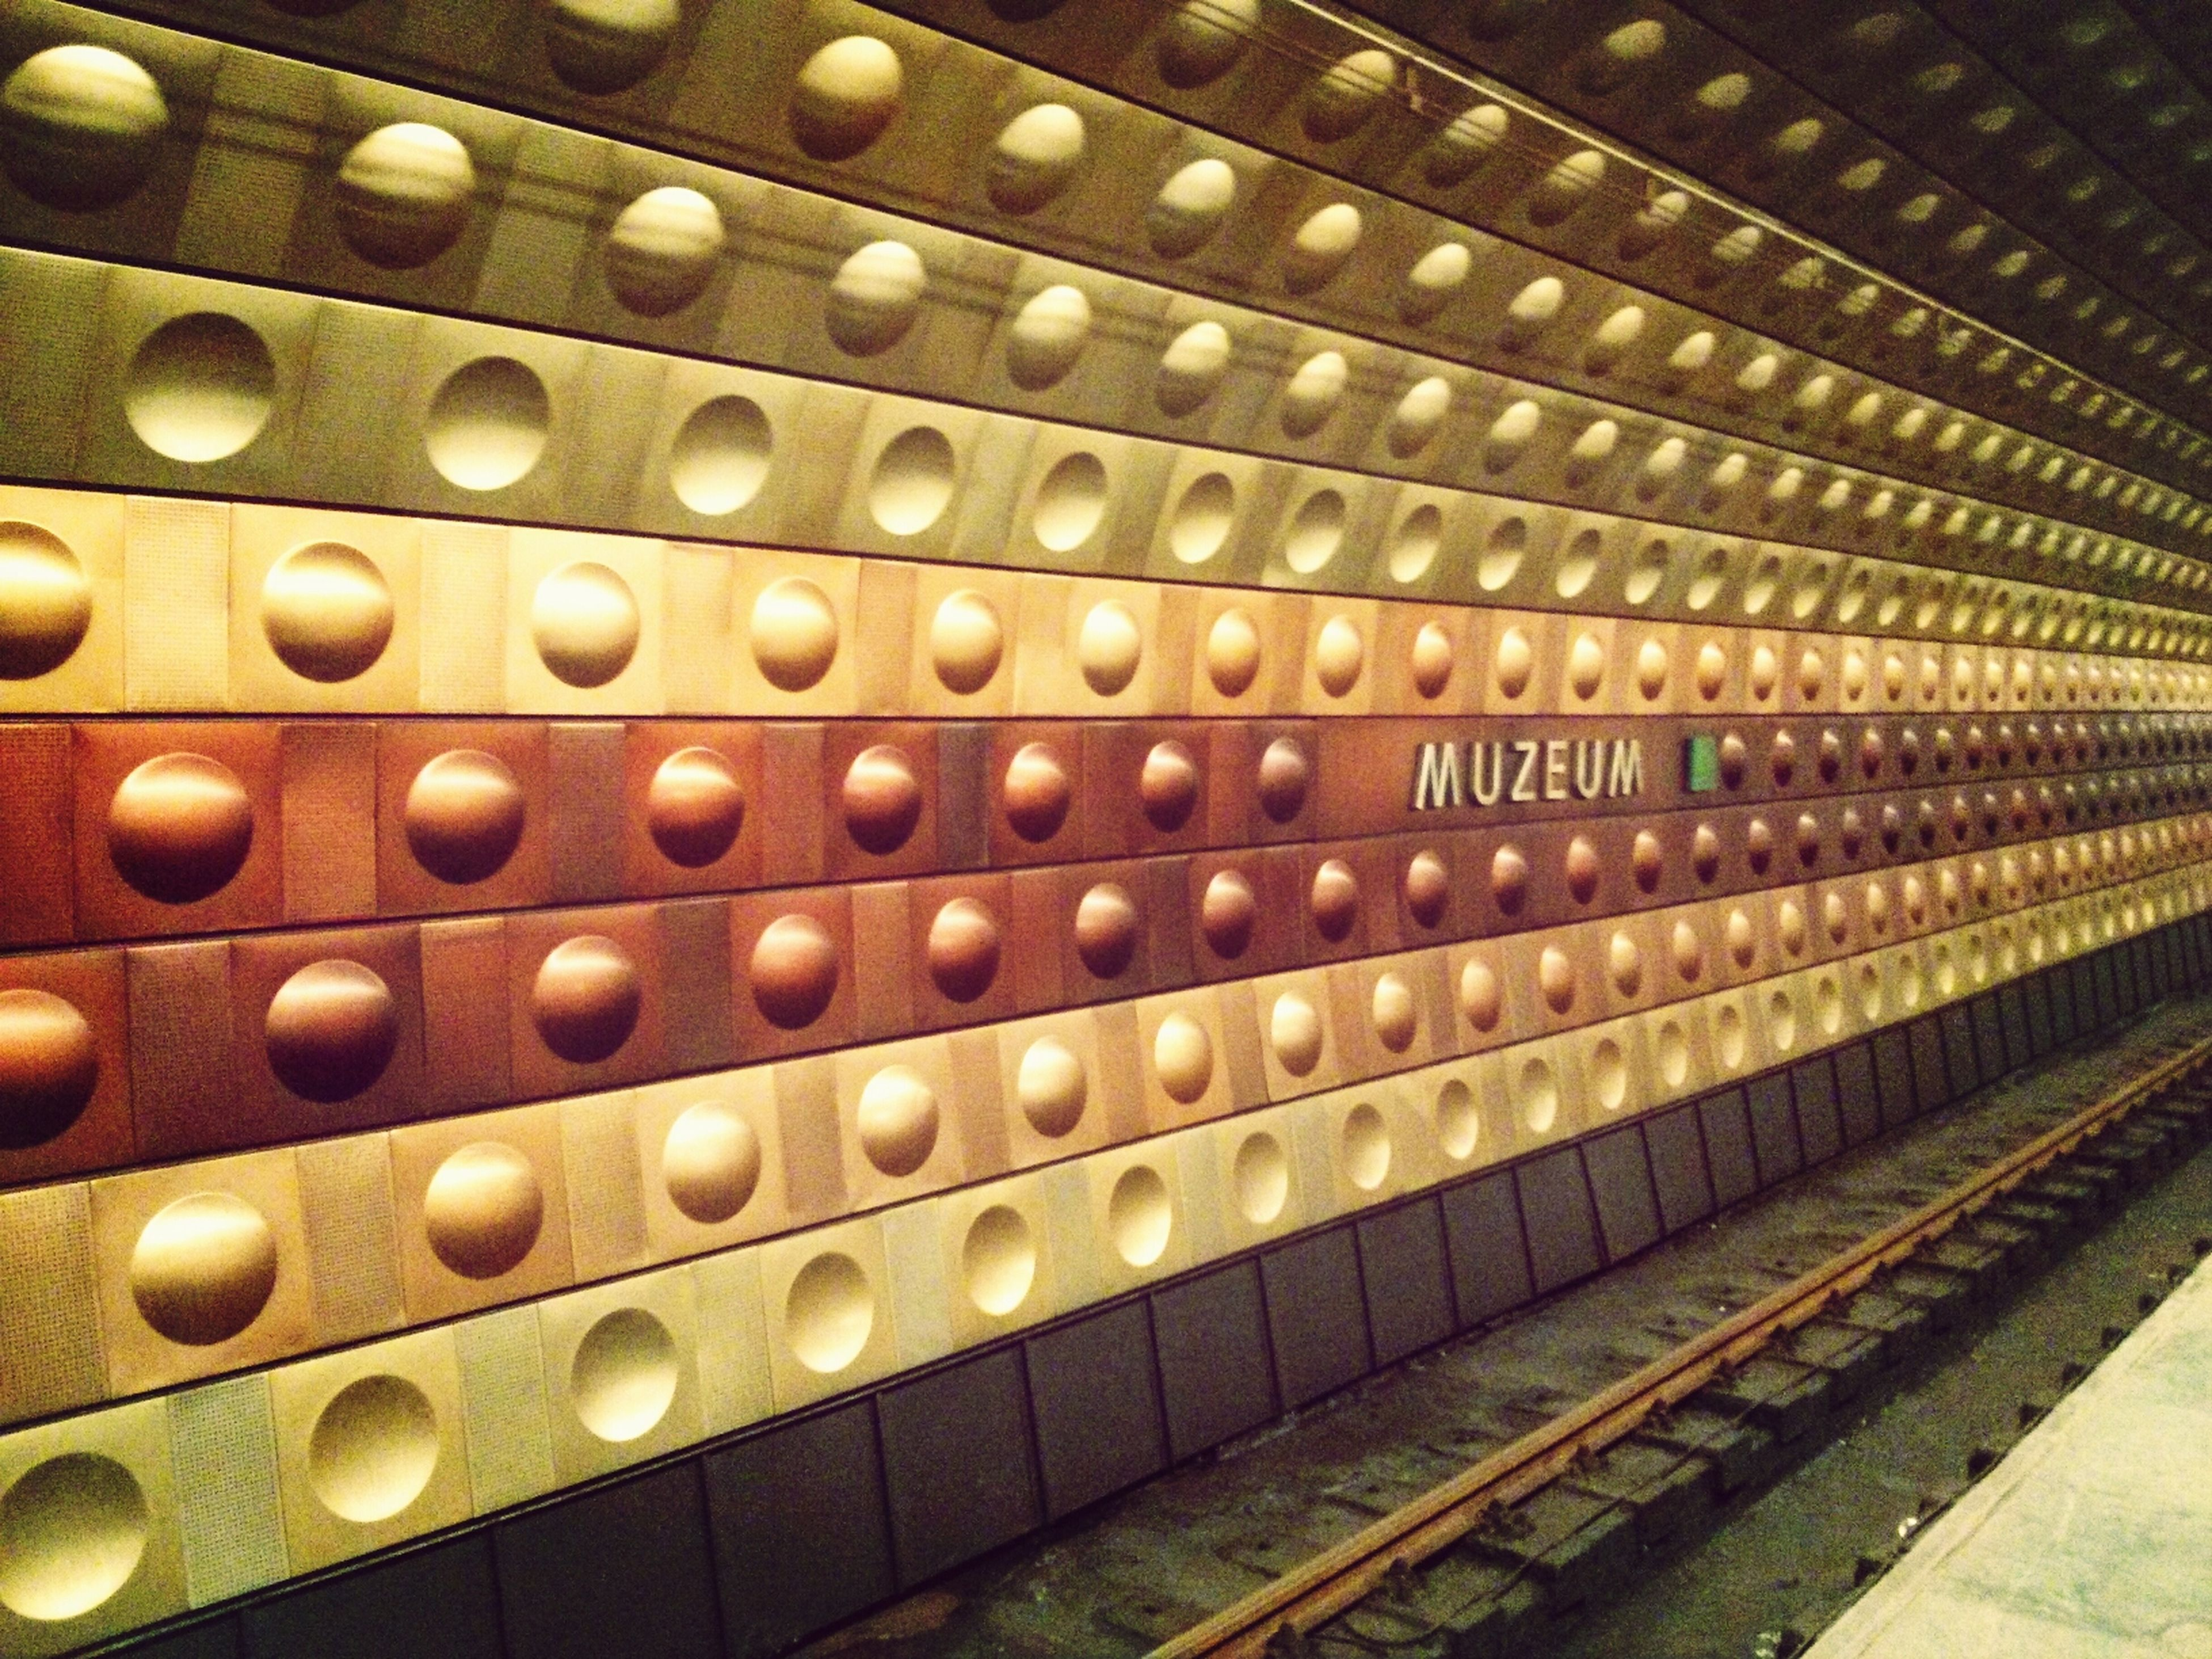 indoors, metal, full frame, backgrounds, metallic, in a row, repetition, pattern, no people, high angle view, technology, railroad track, close-up, transportation, rail transportation, public transportation, large group of objects, connection, day, number